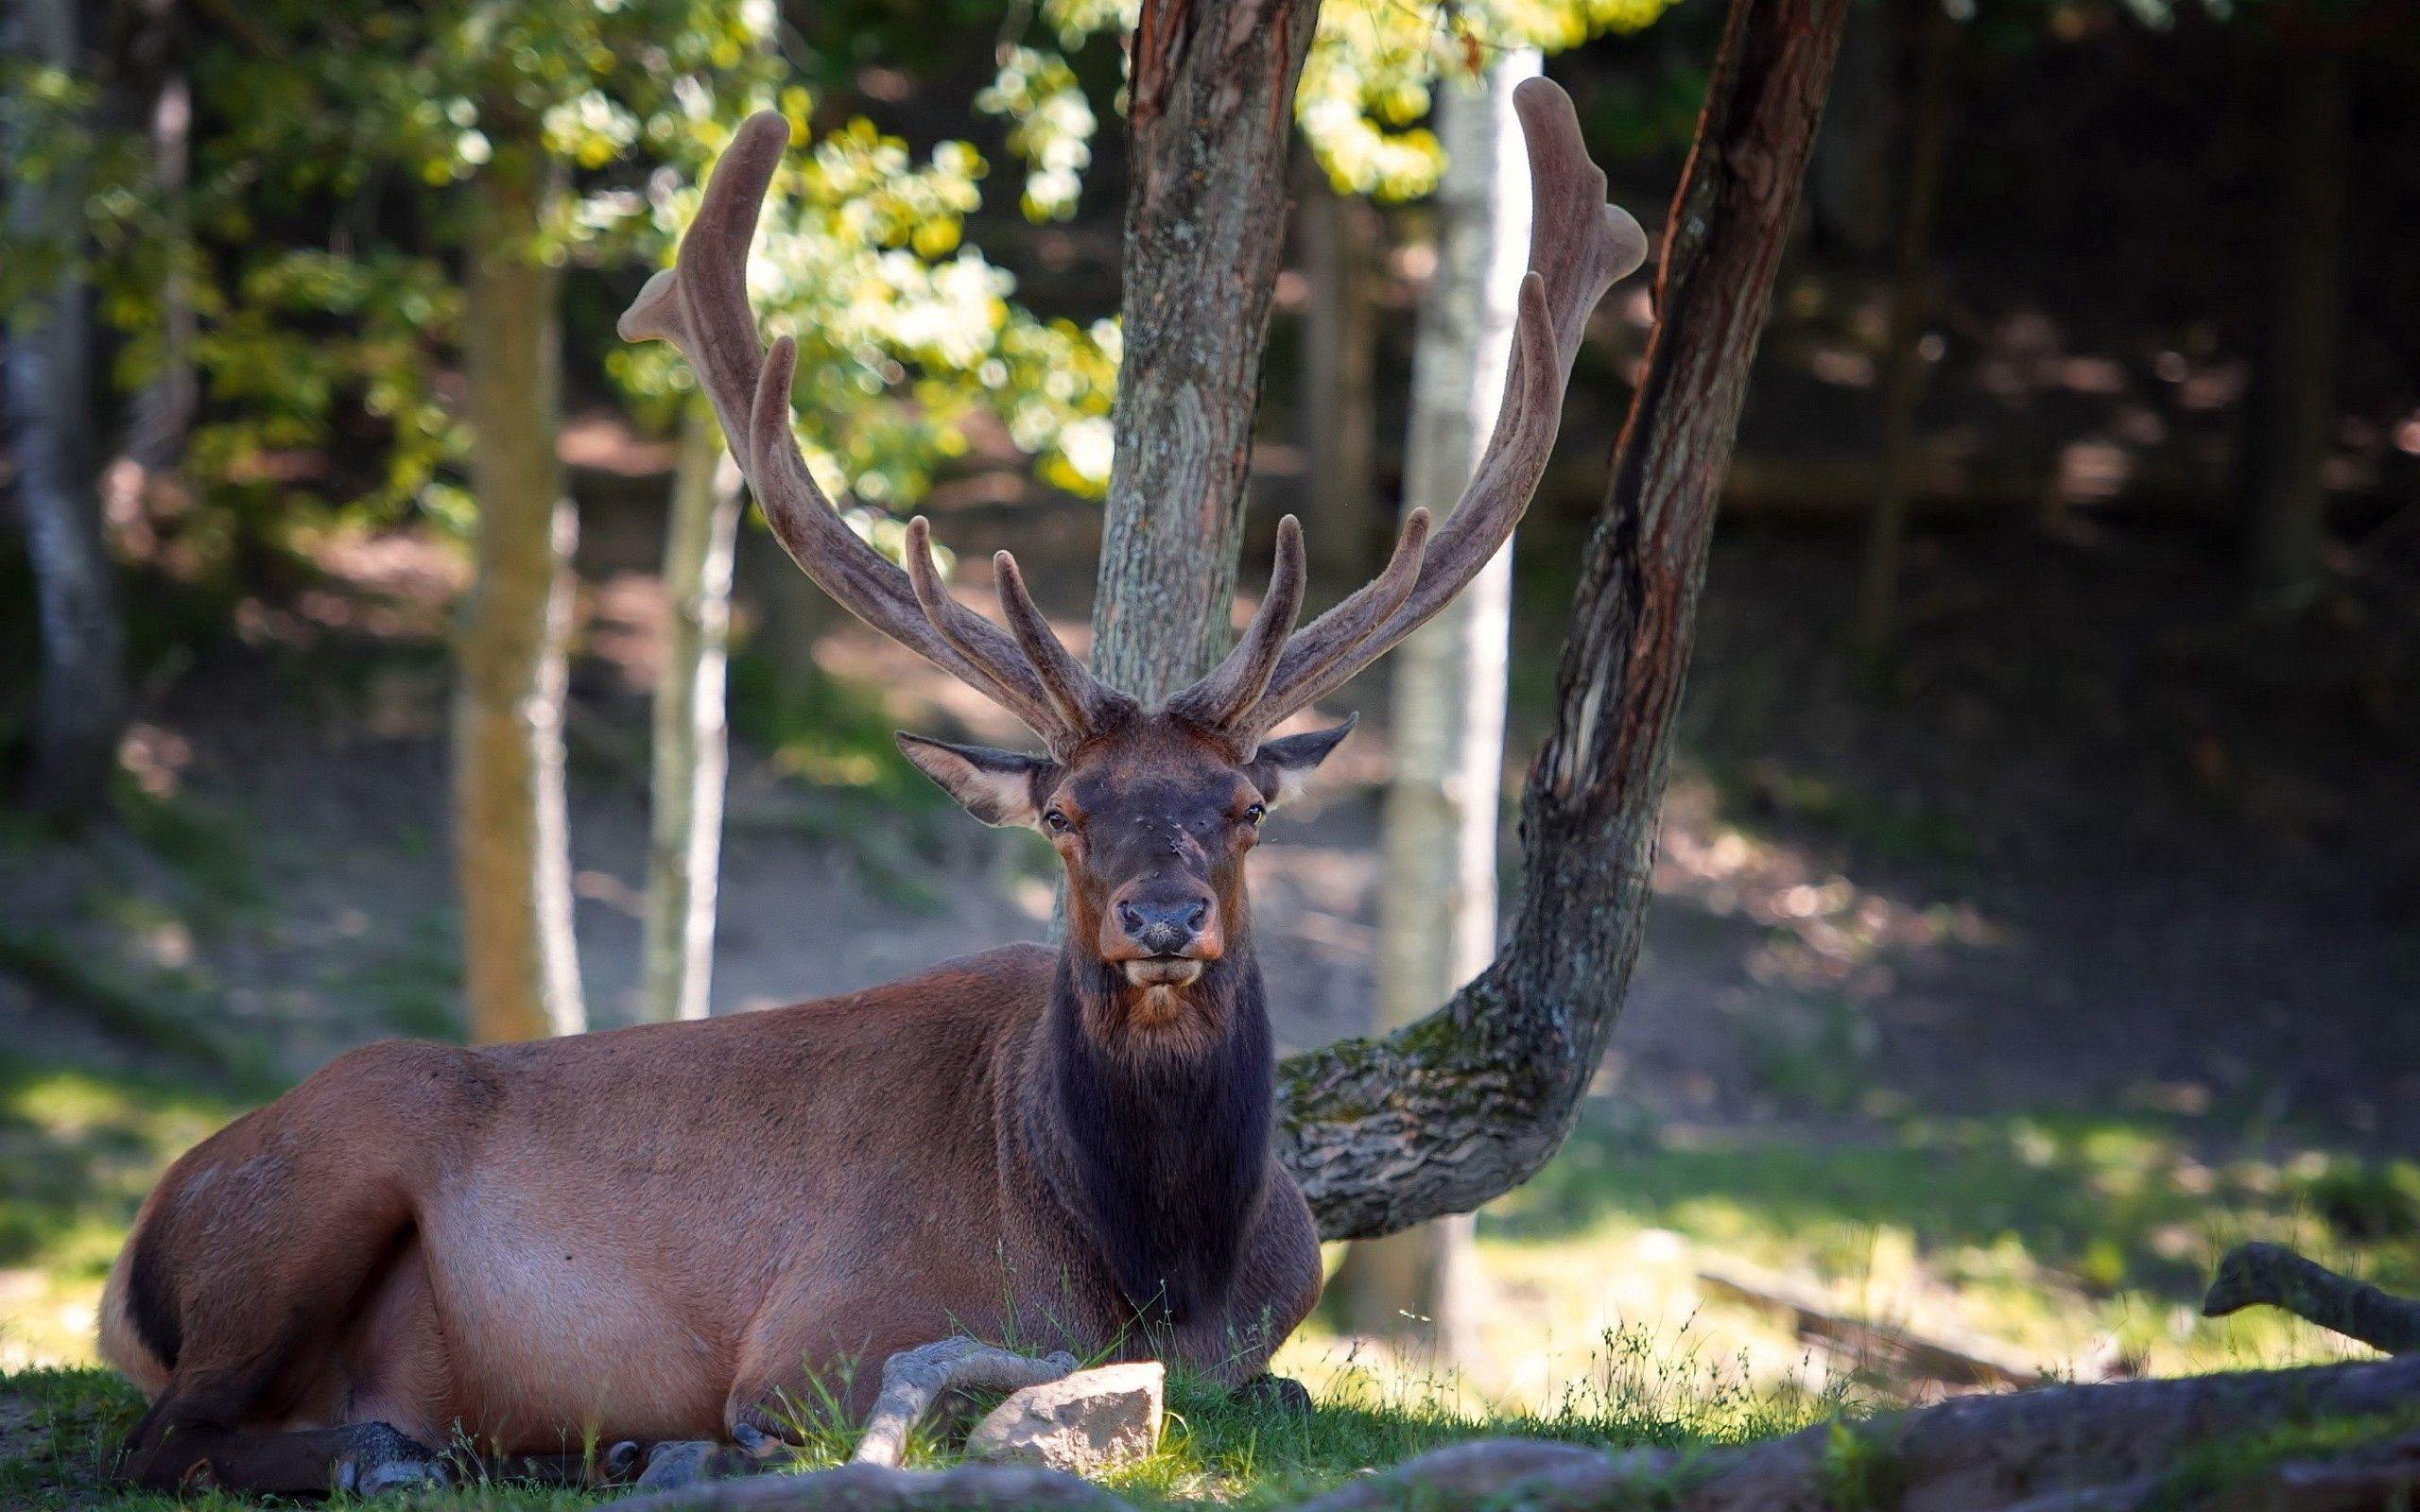 83182 download wallpaper Animals, Deer, Horns, To Lie Down, Lie, Nature, Wood, Tree screensavers and pictures for free